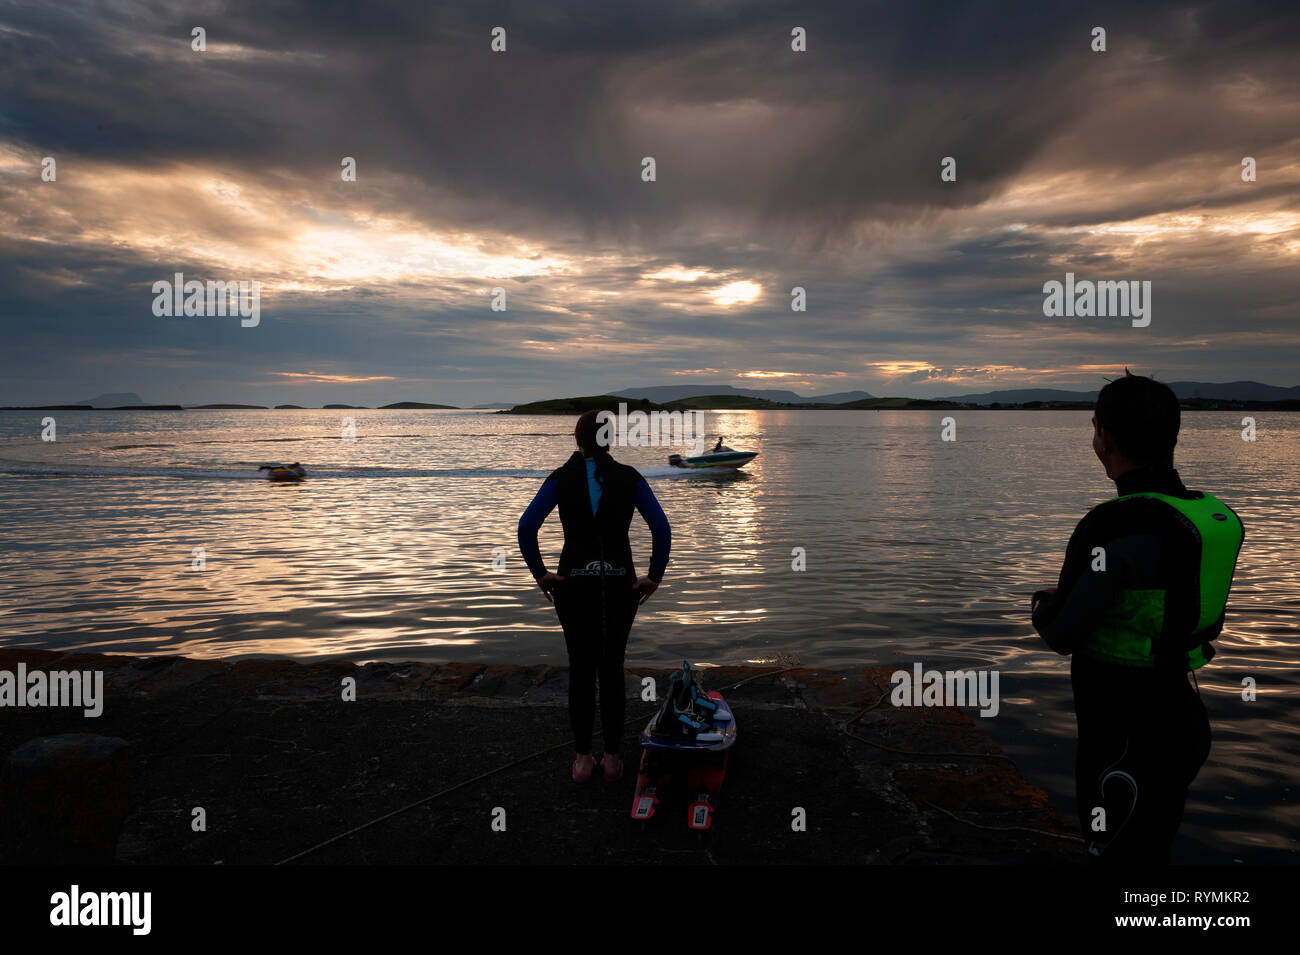 Watersports in Clew Bay Westport County Mayo - Stock Image